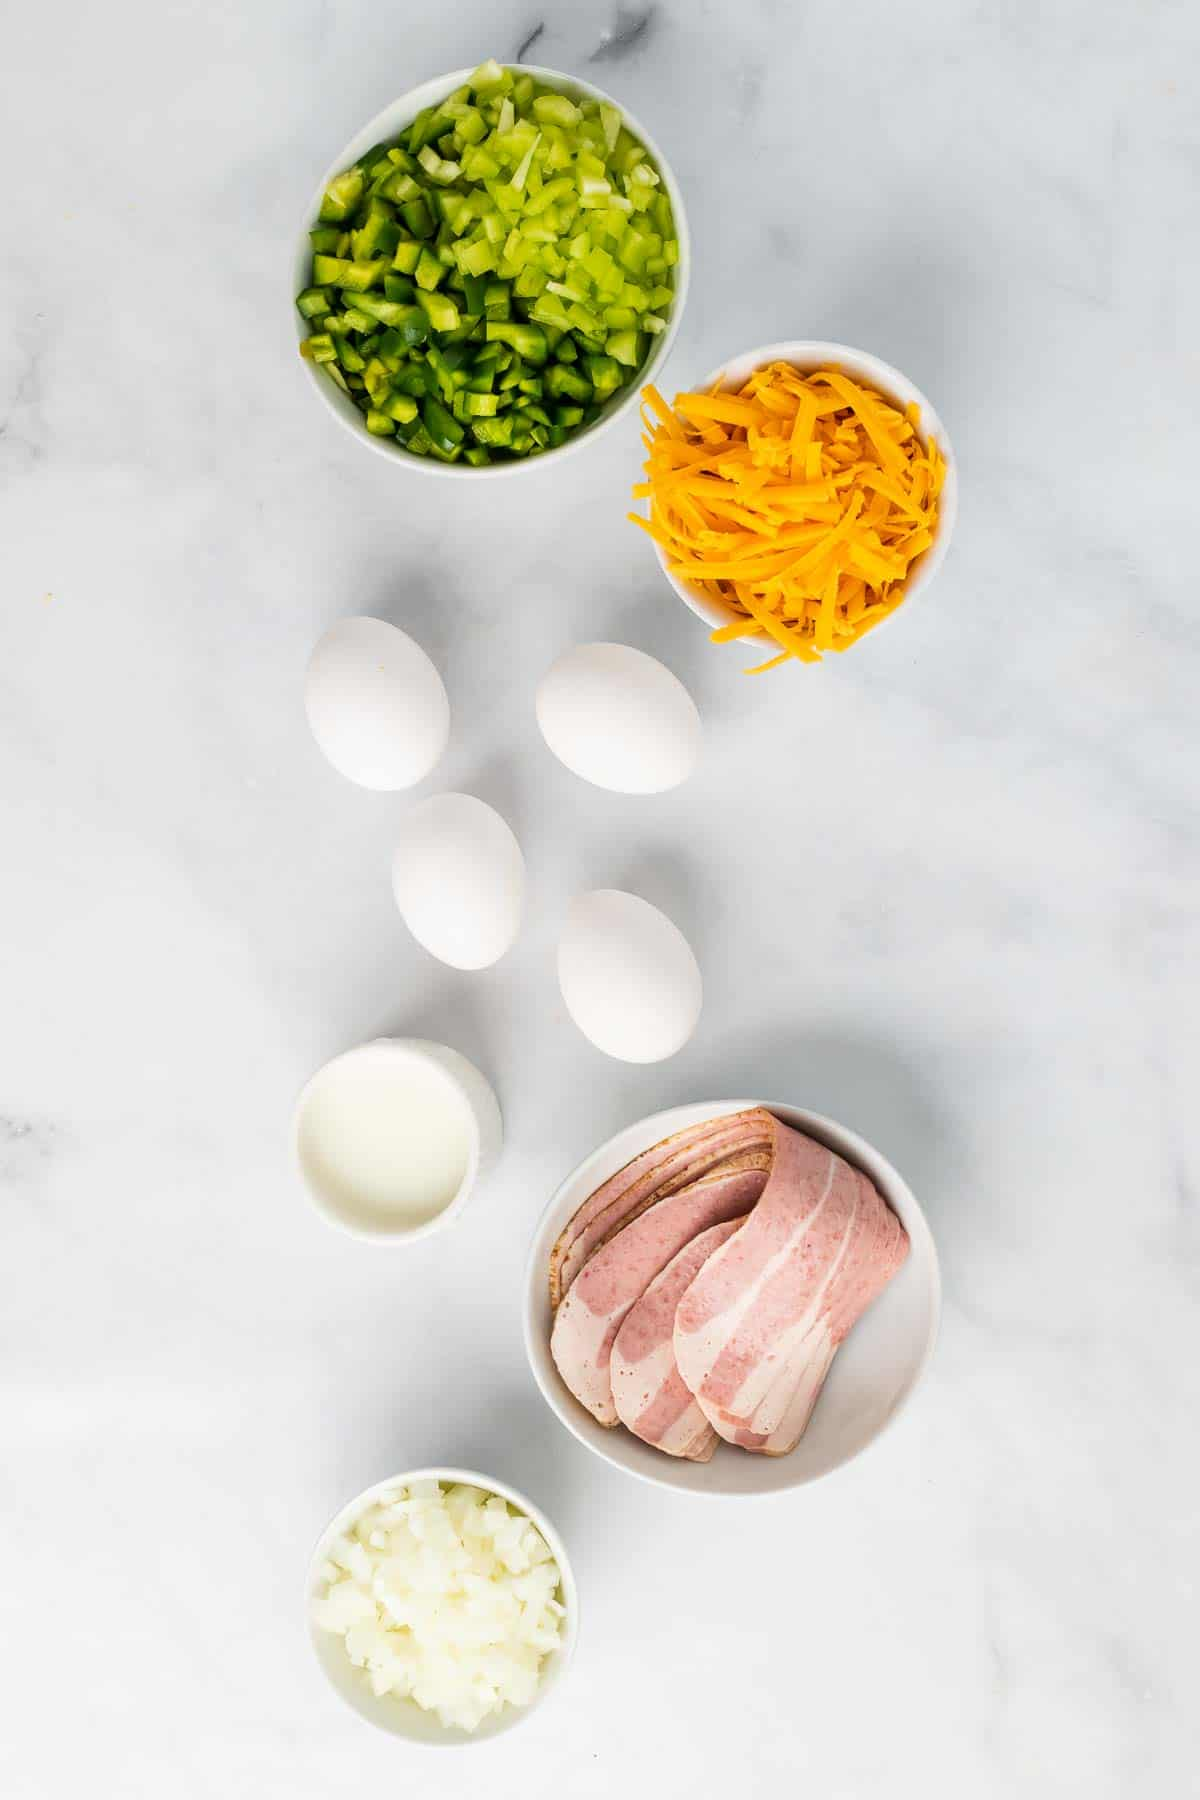 Ingredients laid out on a marble surface